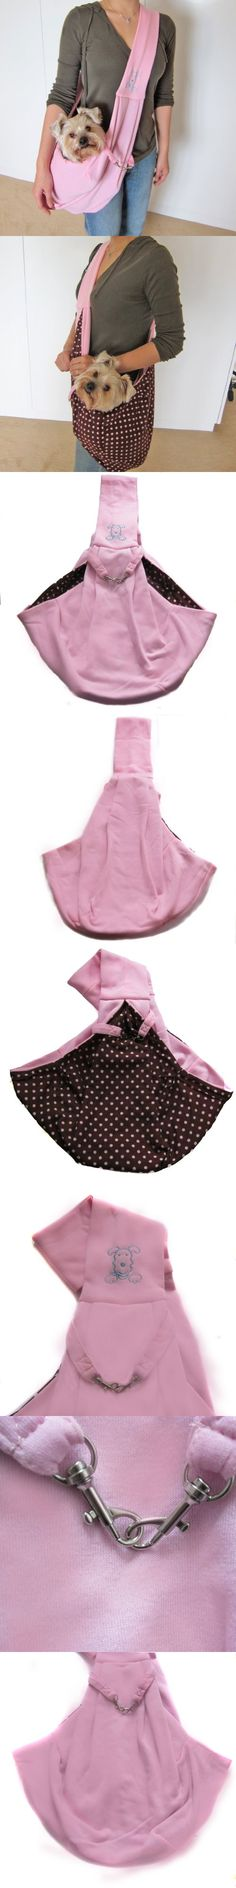 Alfie Couture Designer Pet Accessory - Chico Reversible Pet Sling Carrier - Color: Pink - This reversible sling dog carriers are the perfect combination of convenience and style. Convenient sling-style carrier loops over shoulder while the pet rests in the pouch on the opposite hip to keep... - Carriers - Pet Supplies - $28.99